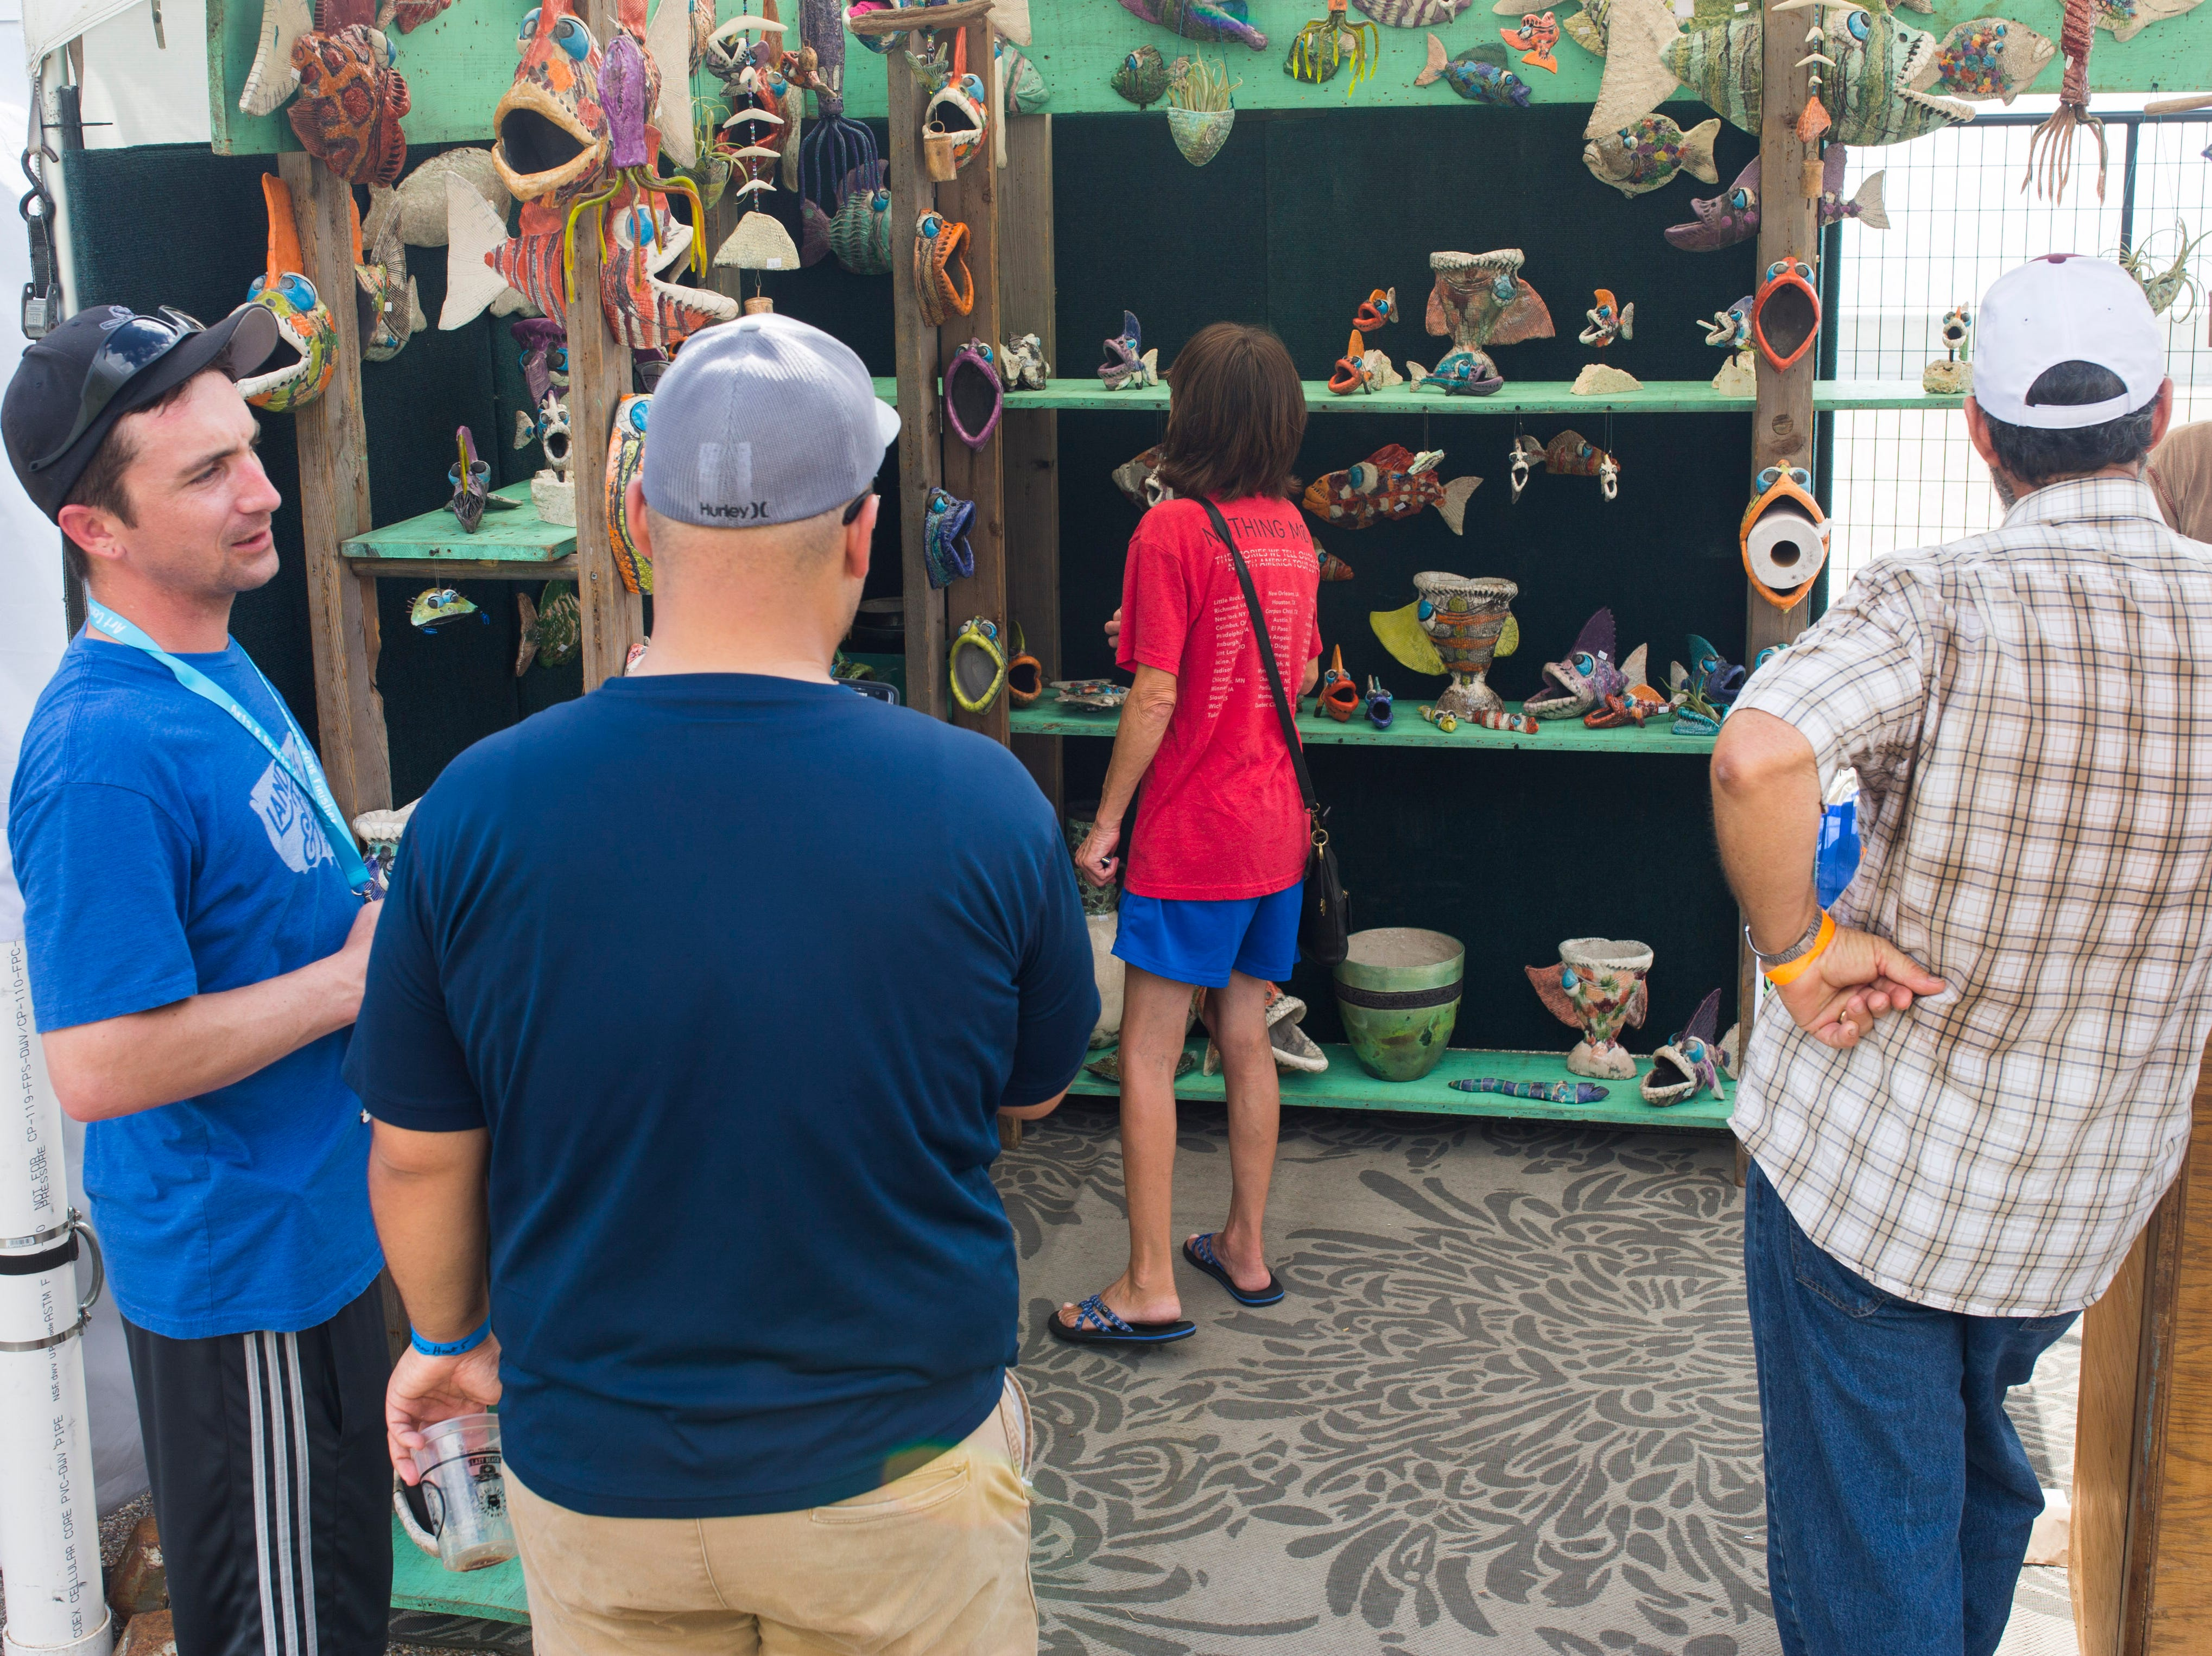 People shop during the annual Arts Alive Festival at the Art Center of Corpus Christi on Saturday, Sep. 1, 2018.